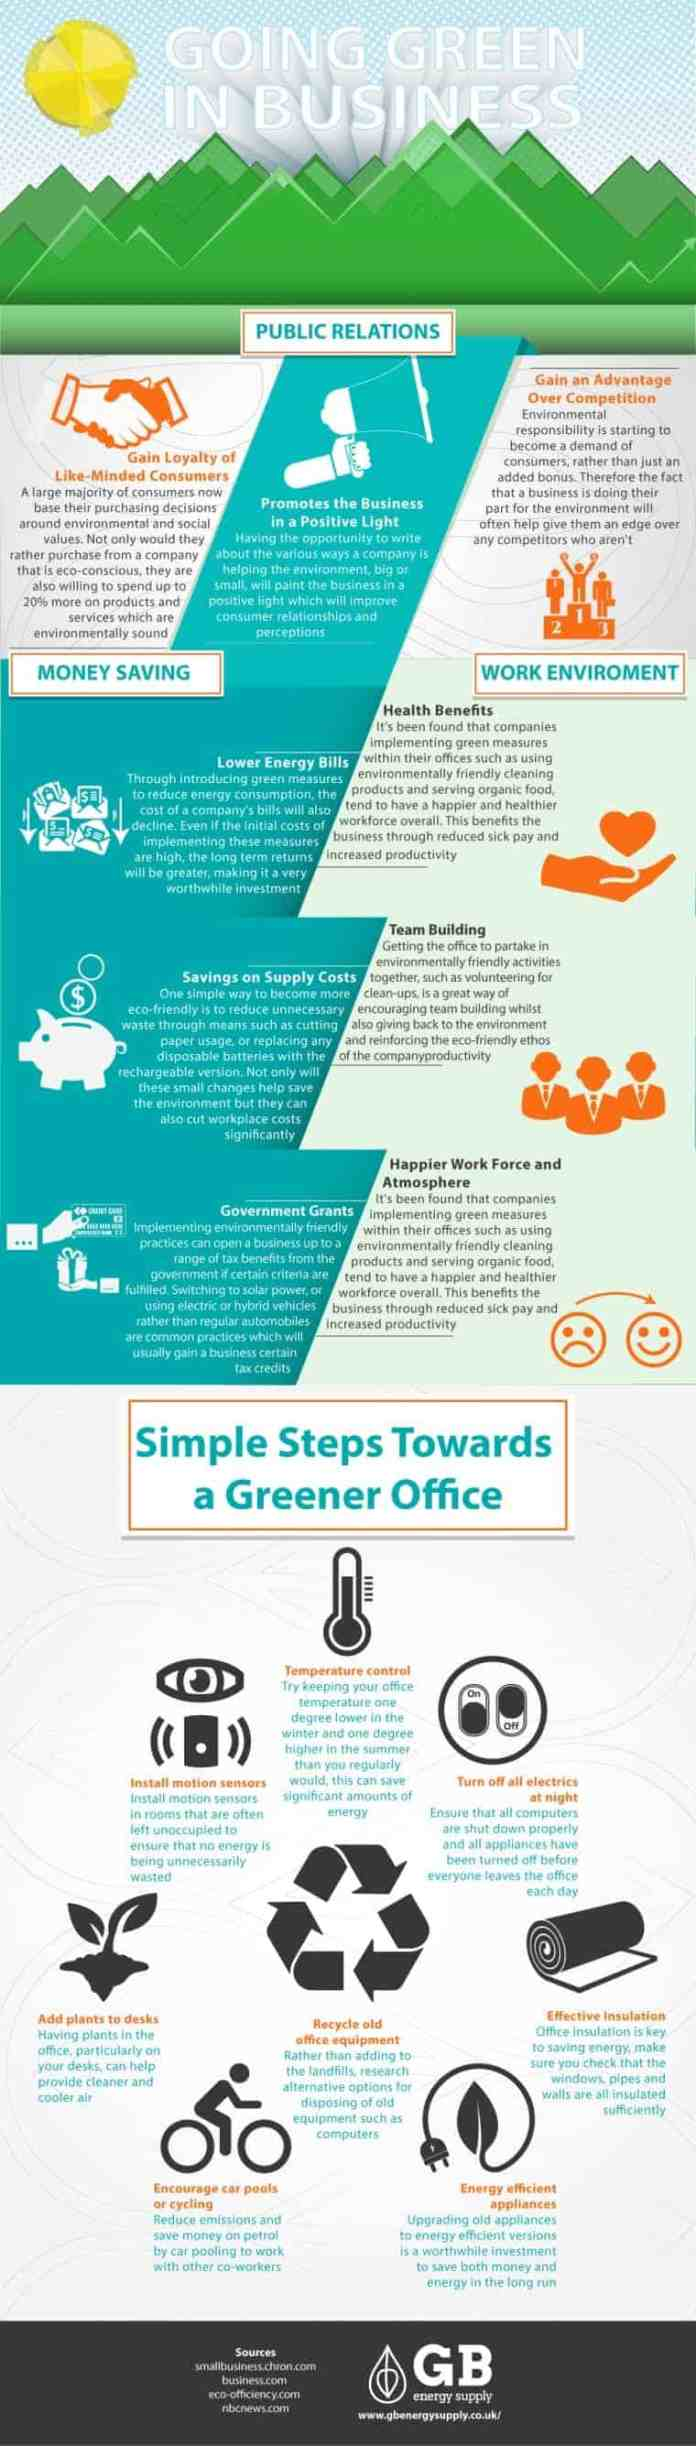 going green business infographic